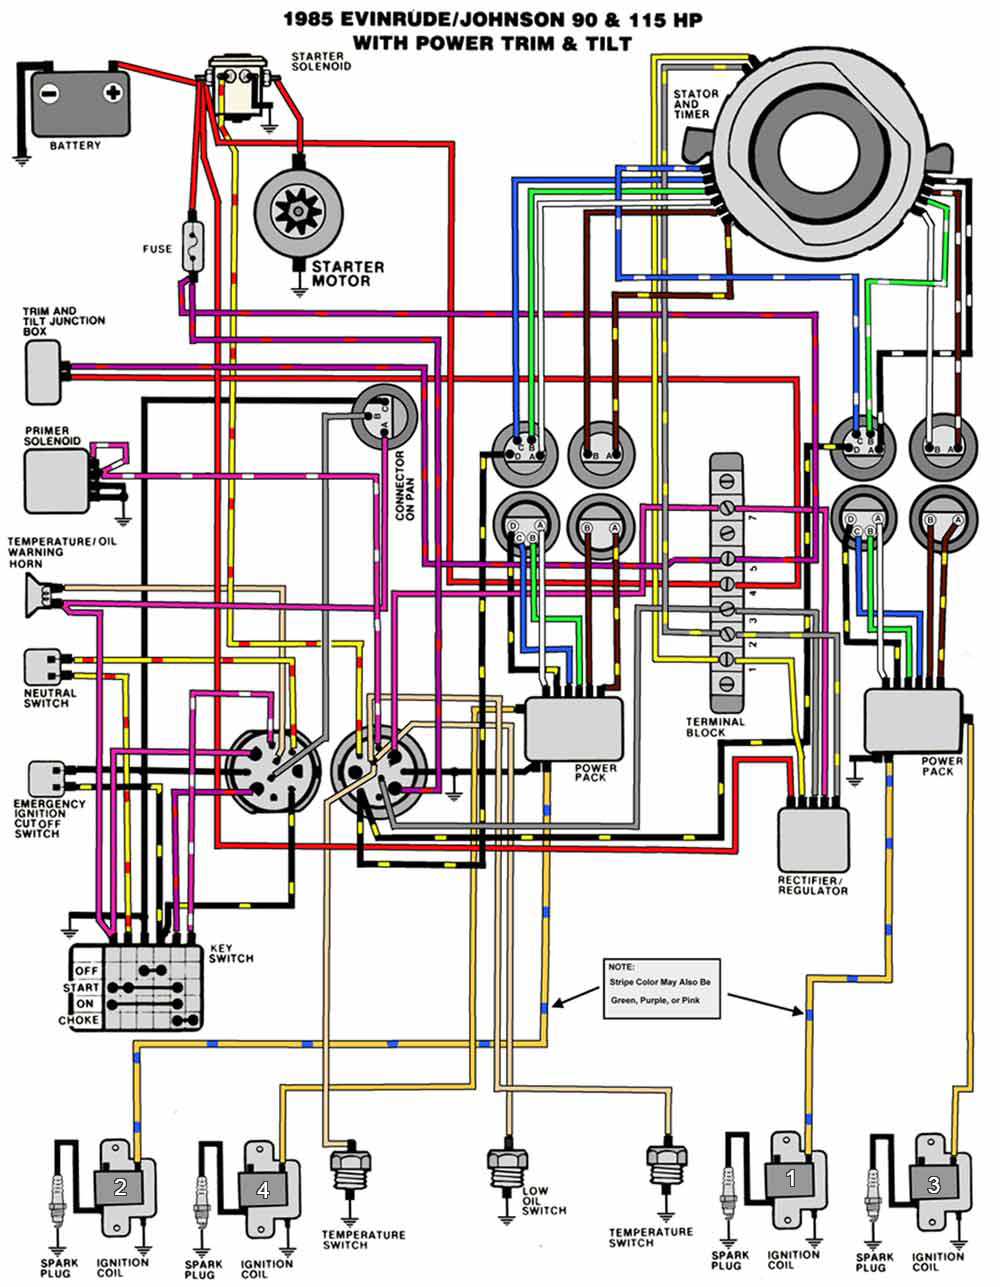 70 hp johnson outboard wiring diagram 25 hp johnson outboard wiring diagram